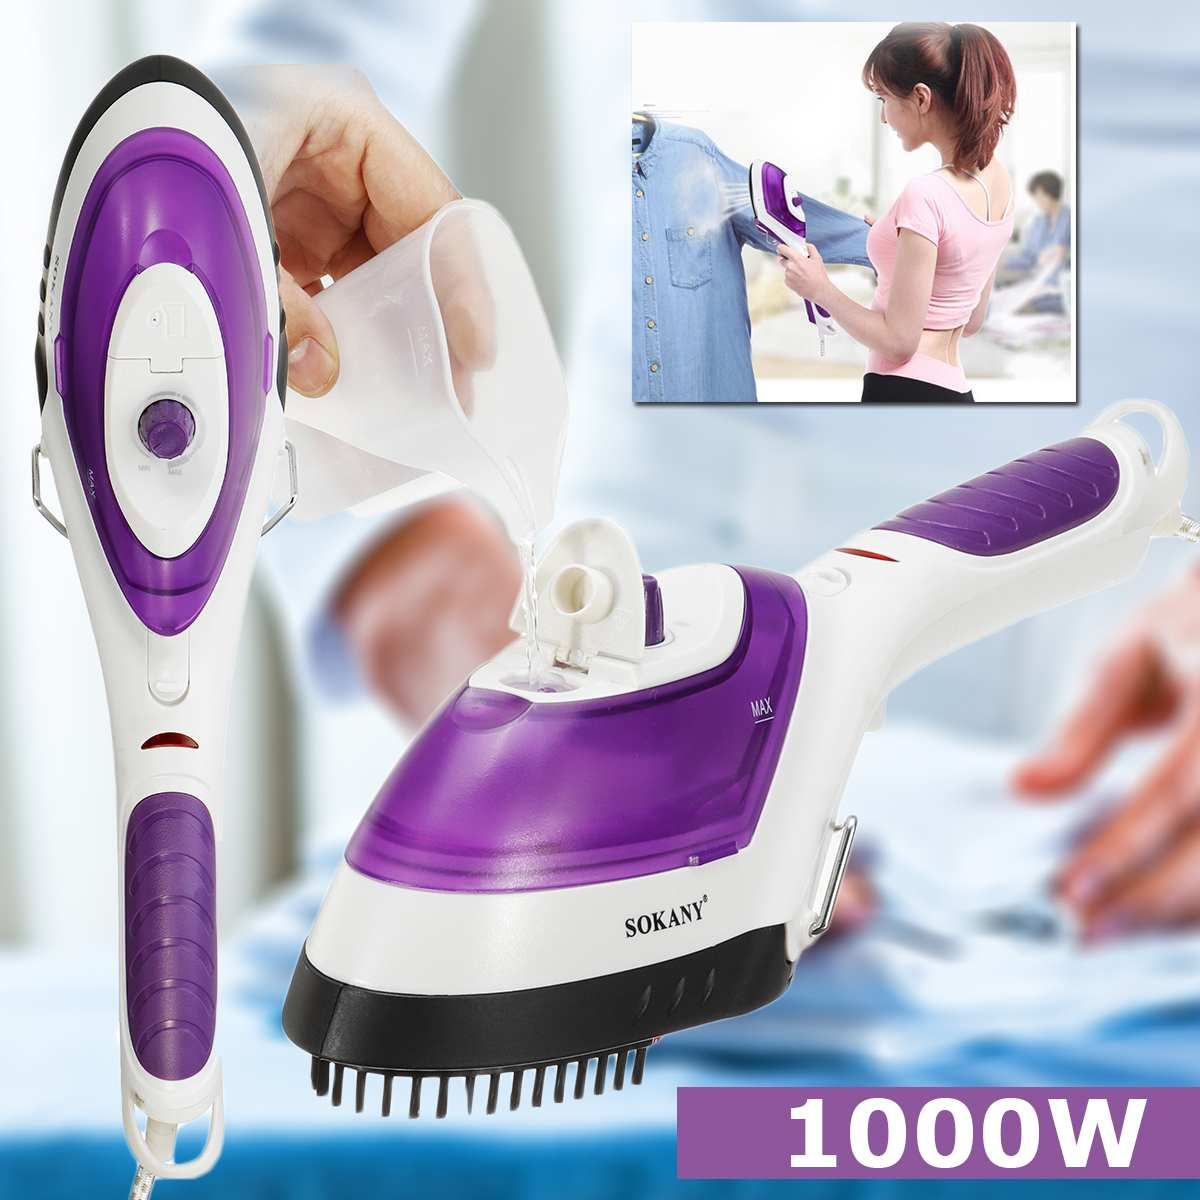 1000W 220V EU Plug Handheld Clothes Garment Steamer Fast-Heat Portable Steam Iron Home Travel Capacity 70ml Strong Hotels Simply